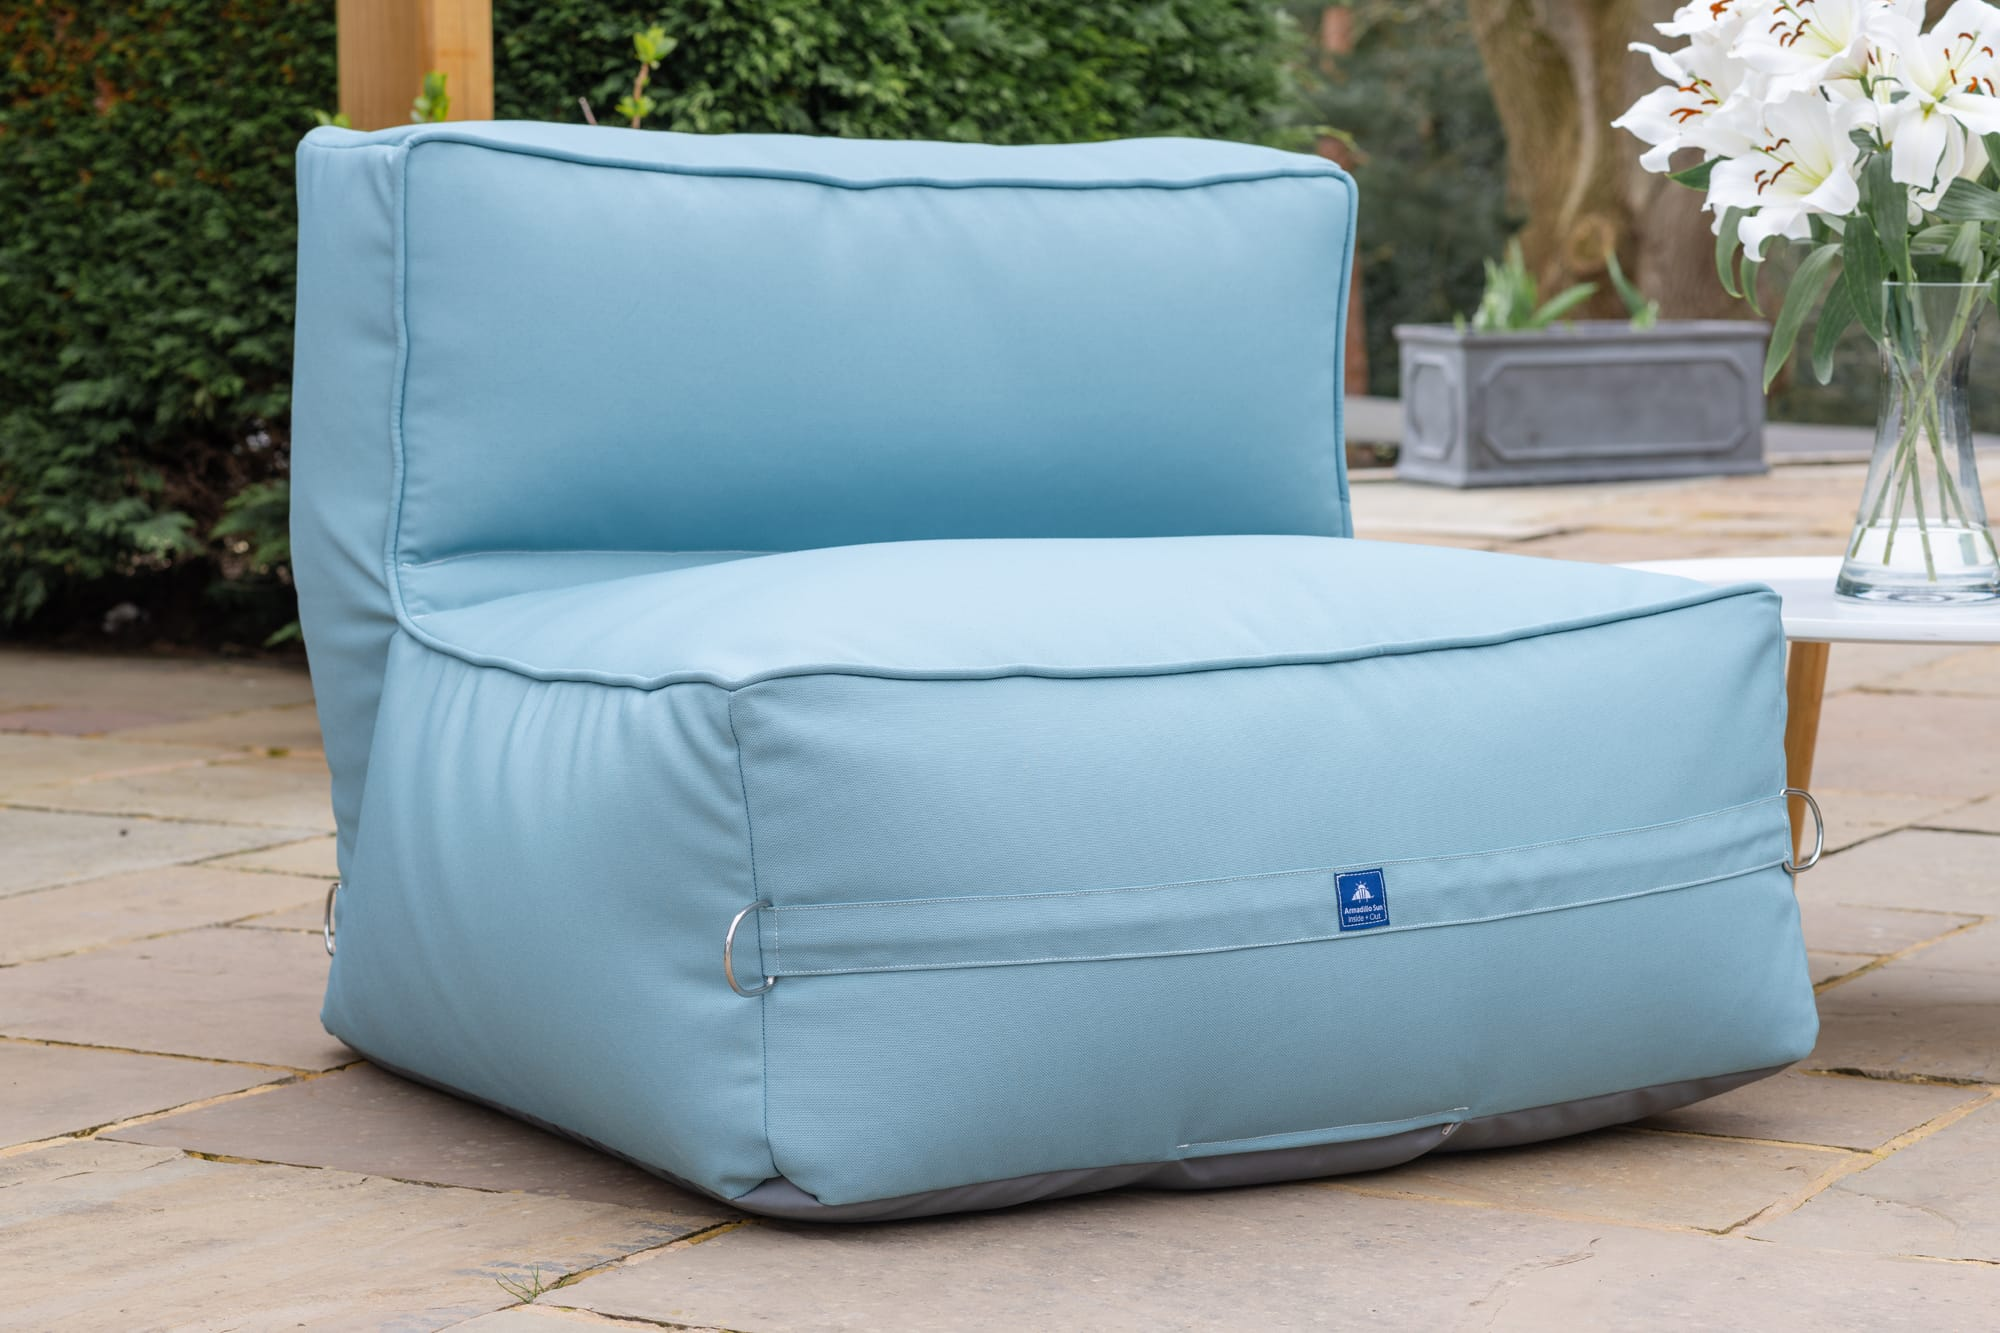 Adult Monaco Modular Bean Bag Chair in Ocean Blue